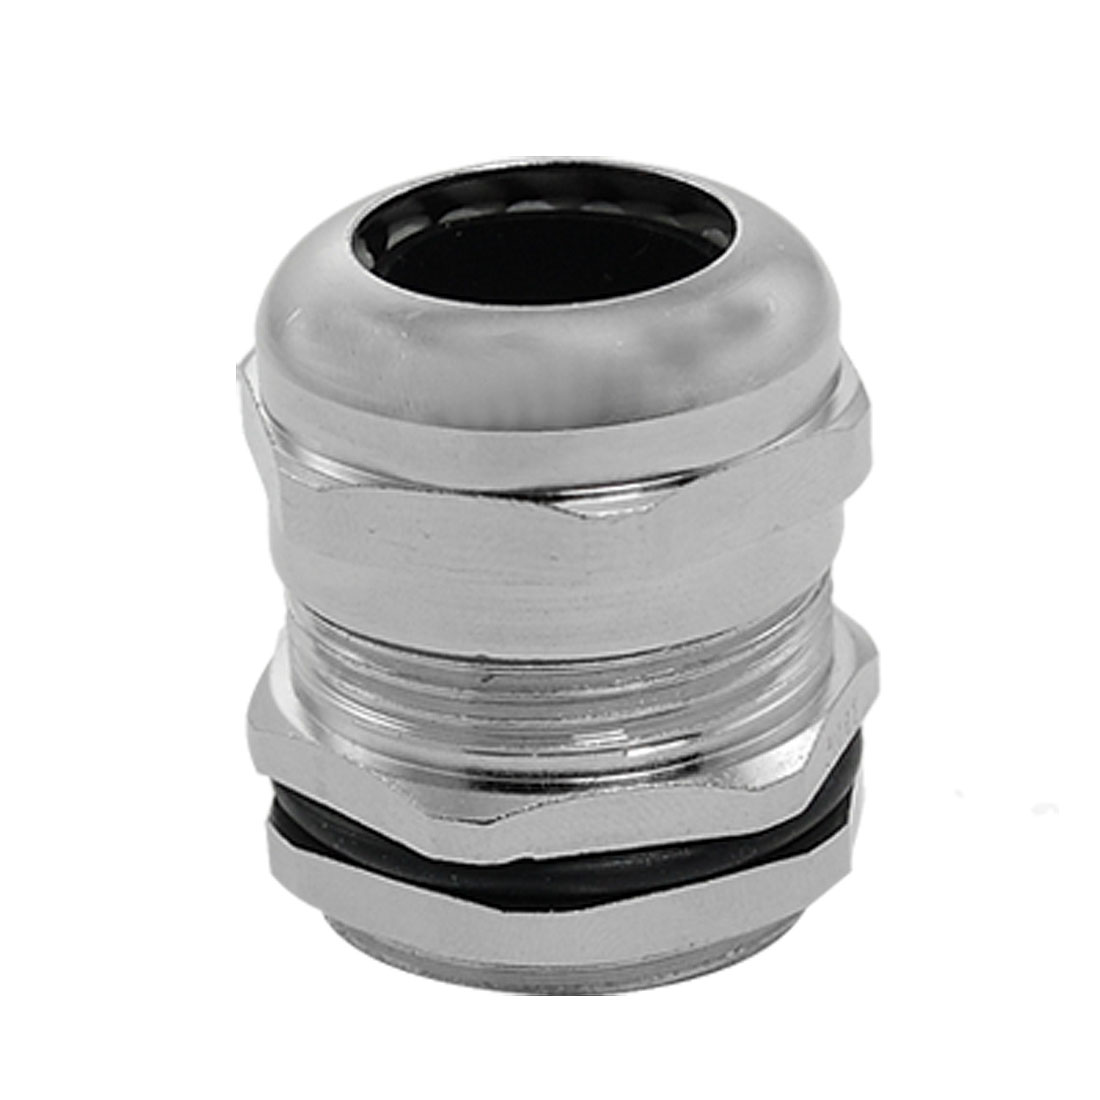 13-18mm Dia Cables PG21 Waterproof Stainless Steel Gland Connector